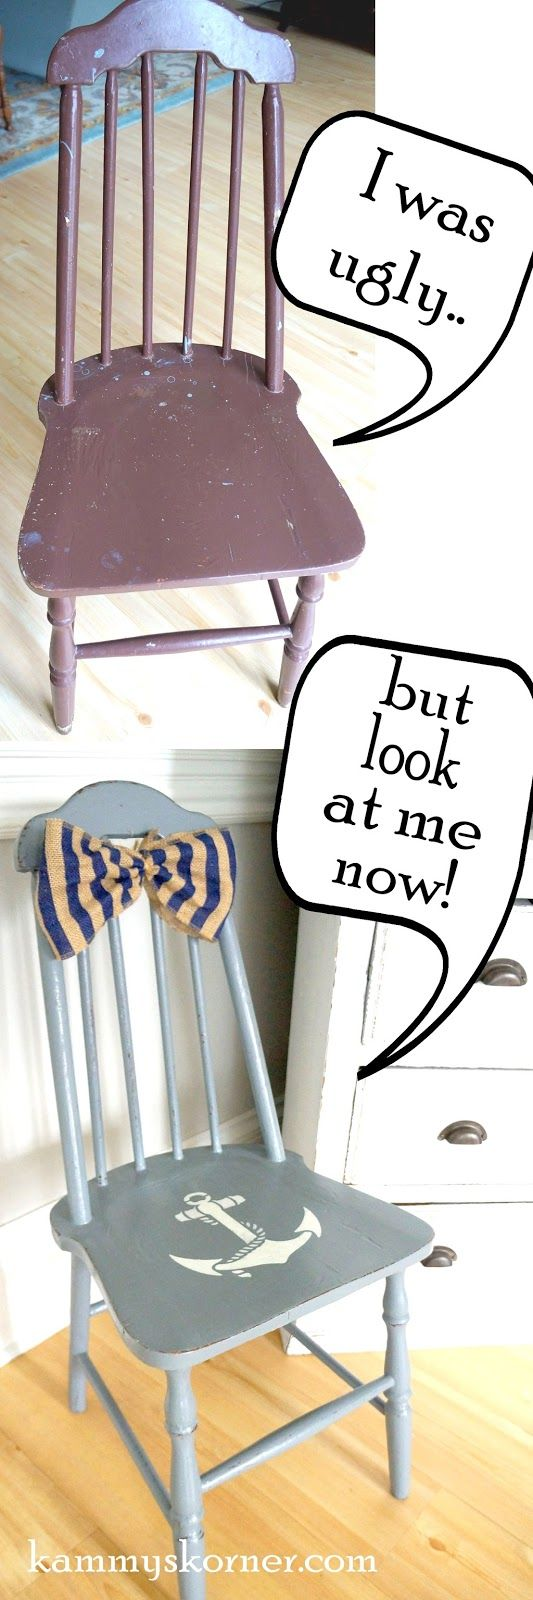 Kammy's Korner: A Wood Kitchen Chair Is A Blank Canvas! Gray Blue spindle chair with navy striped burlap bow and white anchor stencil